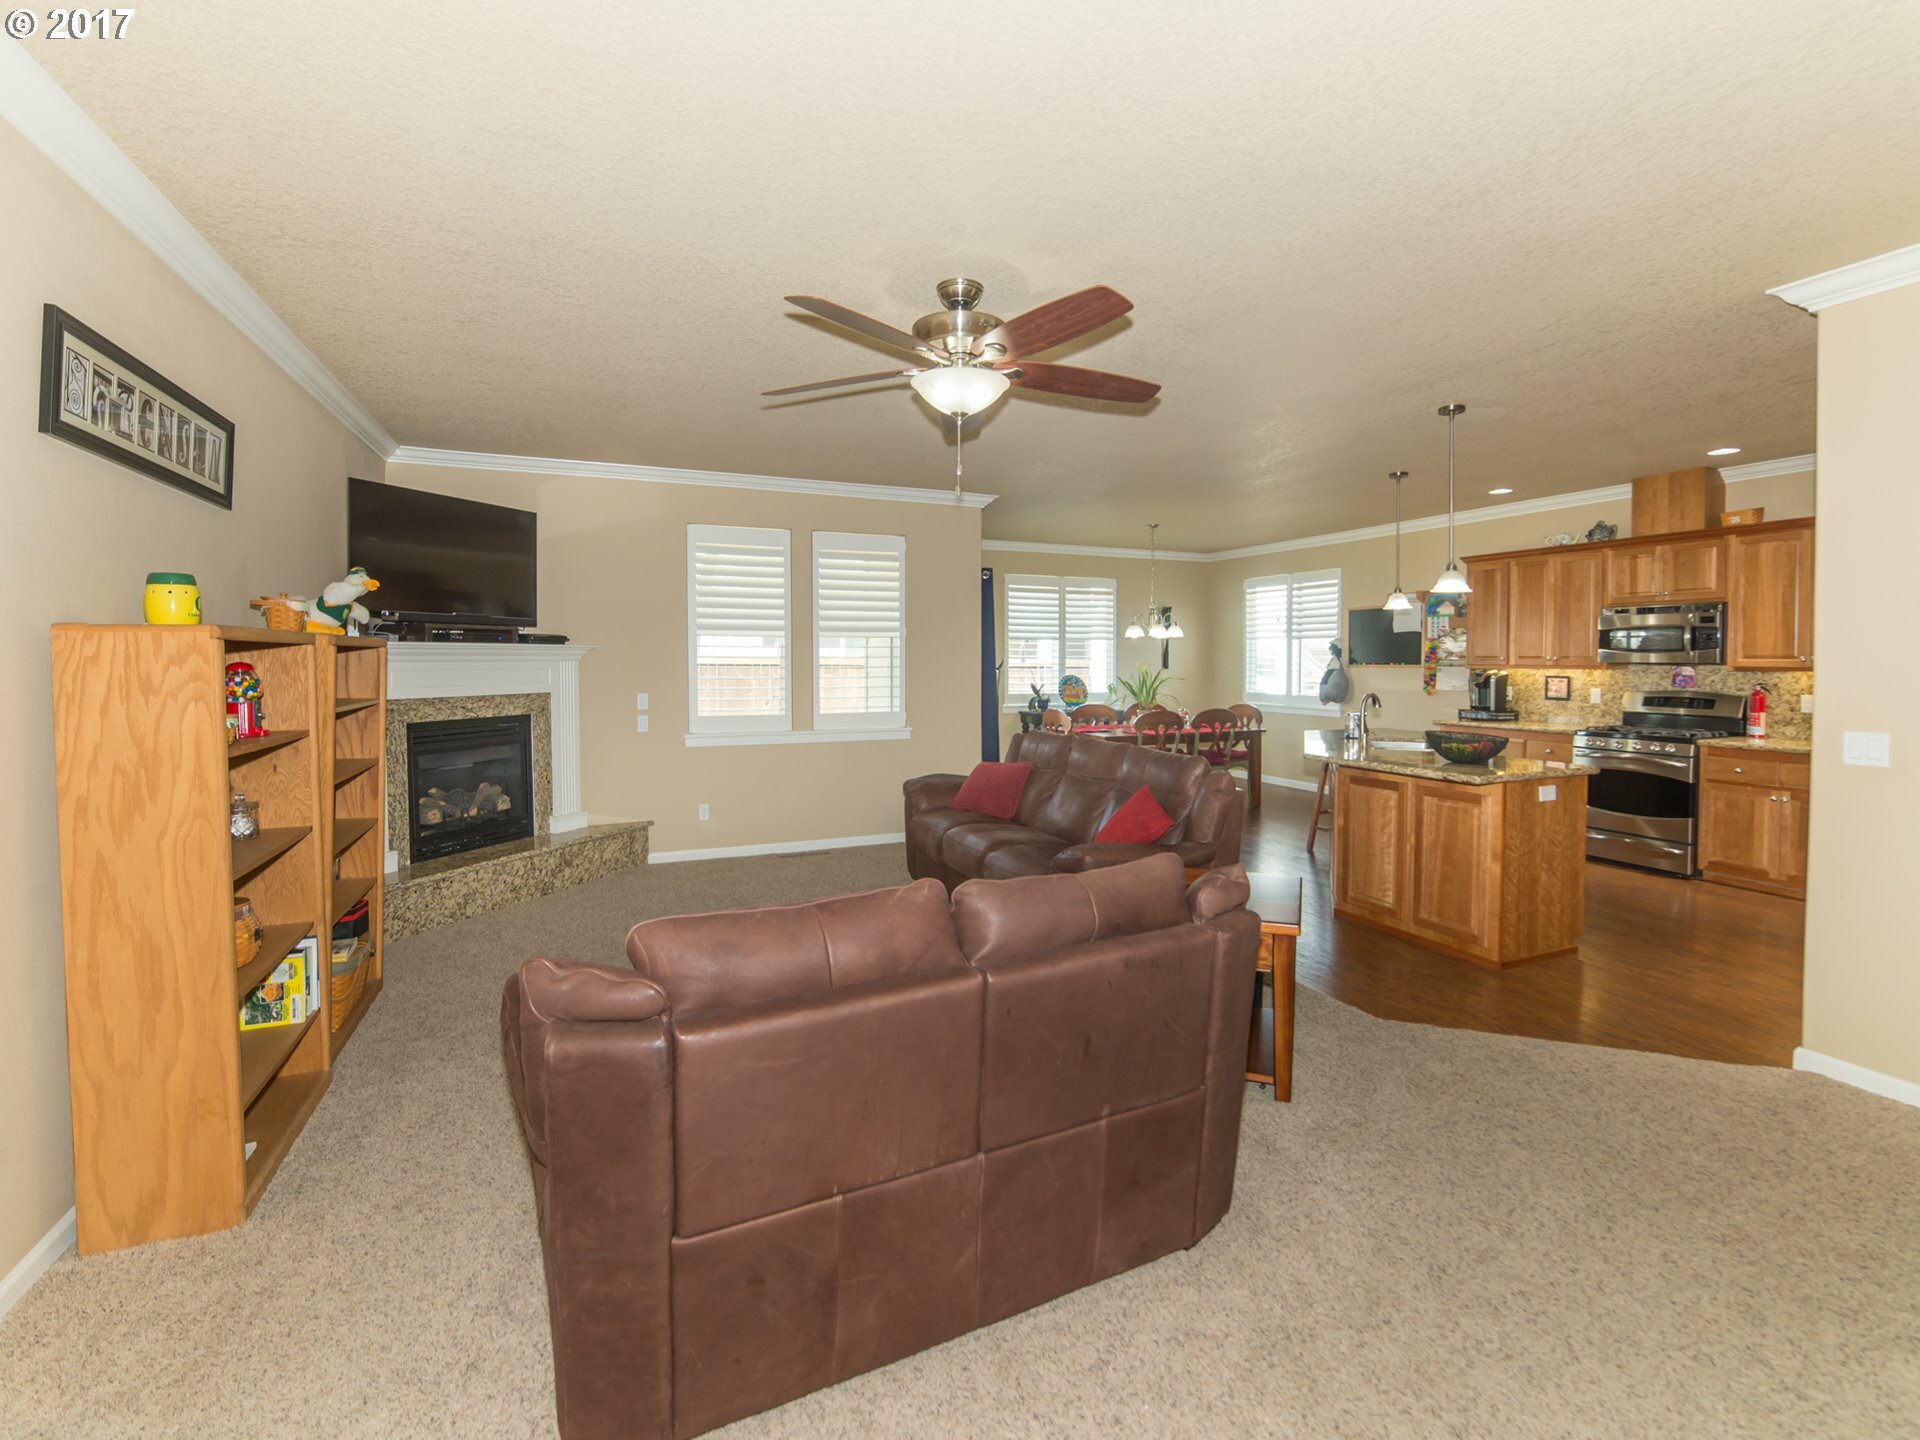 1391 Breckenridge Dr, Junction City, OR - USA (photo 3)